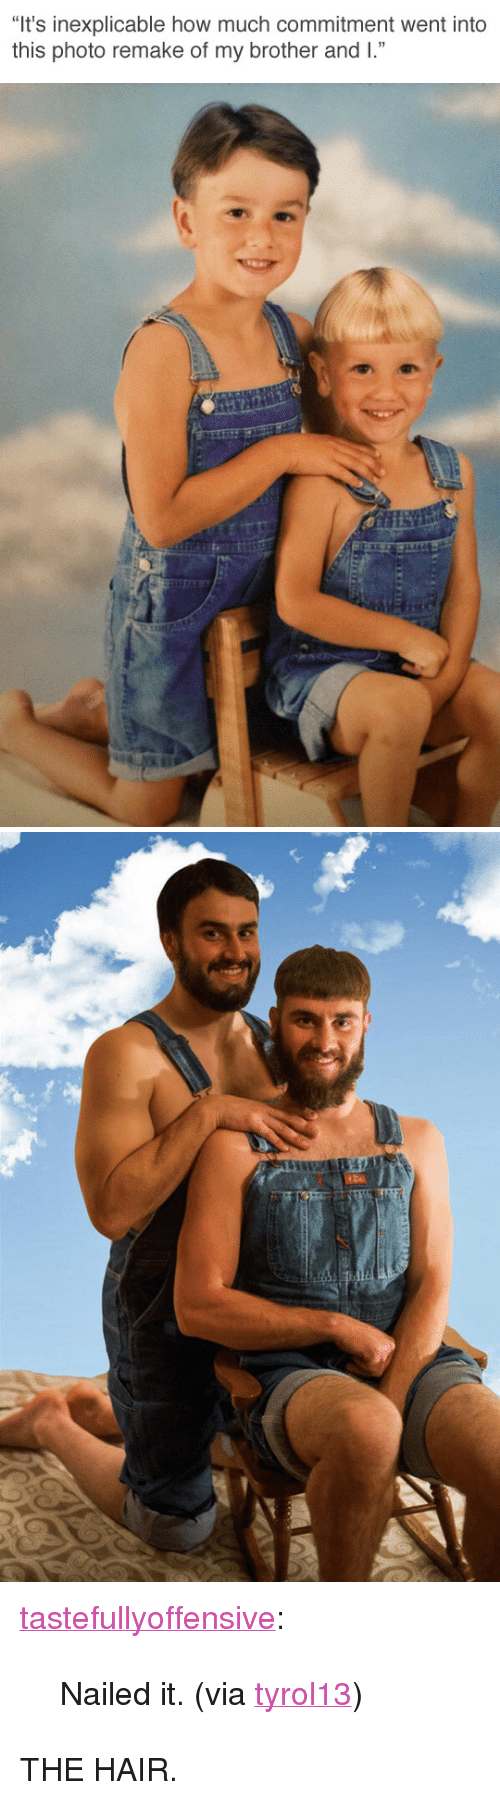 """Reddit, Tumblr, and Blog: """"It's inexplicable how much commitment went into  this photo remake of my brother and I."""" <p><a href=""""http://tumblr.tastefullyoffensive.com/post/159685557573/nailed-it-via-tyrol13"""" class=""""tumblr_blog"""">tastefullyoffensive</a>:</p>  <blockquote><p>Nailed it. (via <a href=""""https://www.reddit.com/user/tyrol13"""">tyrol13</a>)</p></blockquote>  <p>THE HAIR.</p>"""